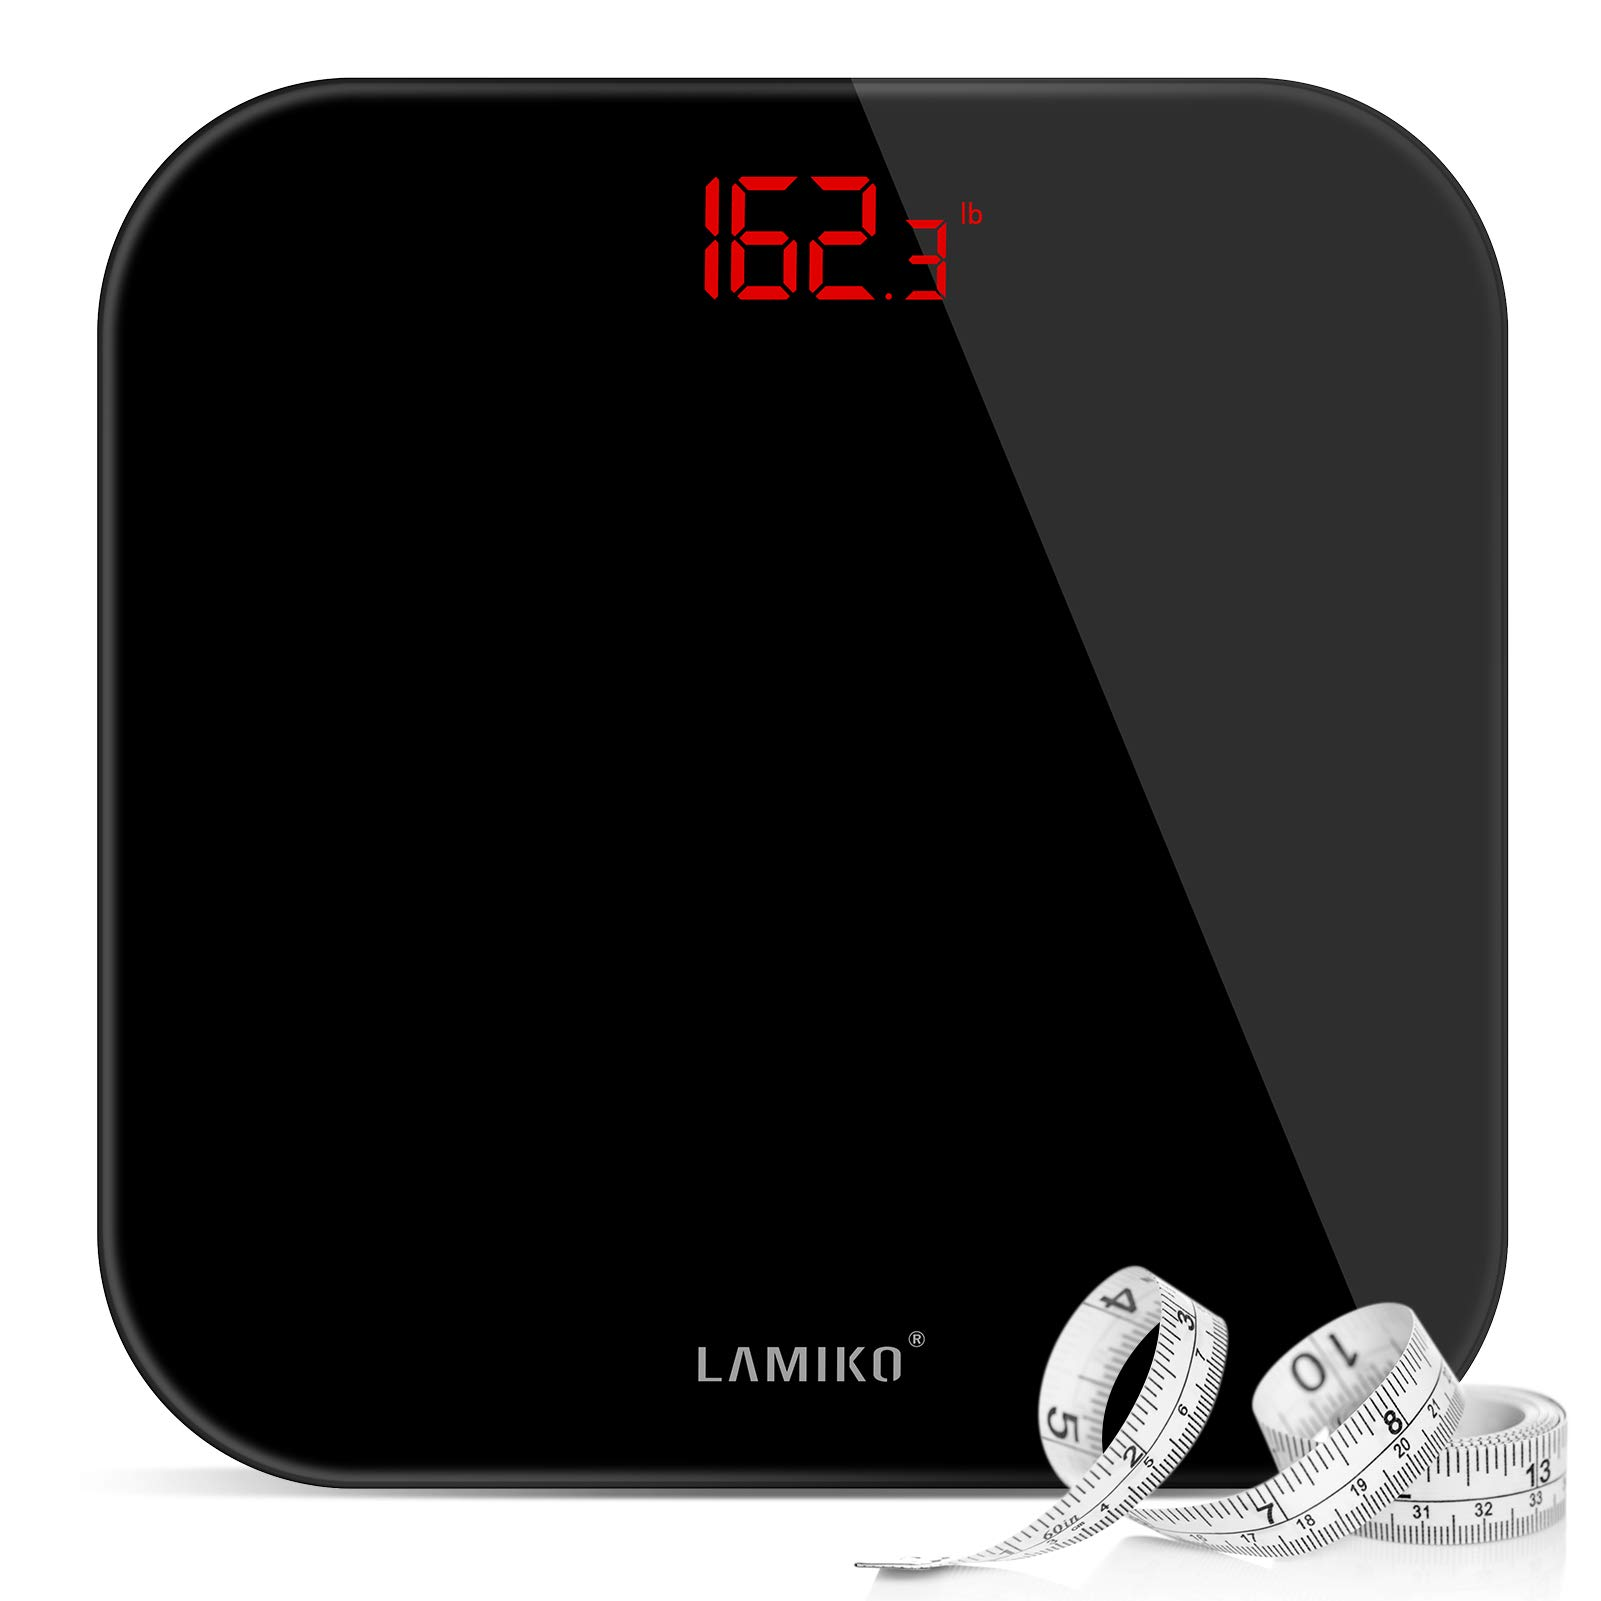 LAMIKO Digital Body Weight Scale with Step-on Technology & LED Display Ultra Slim Round Corner Design for Bathroom Gym Yoga Studio, 396 lbs, Battery Operation, All Black